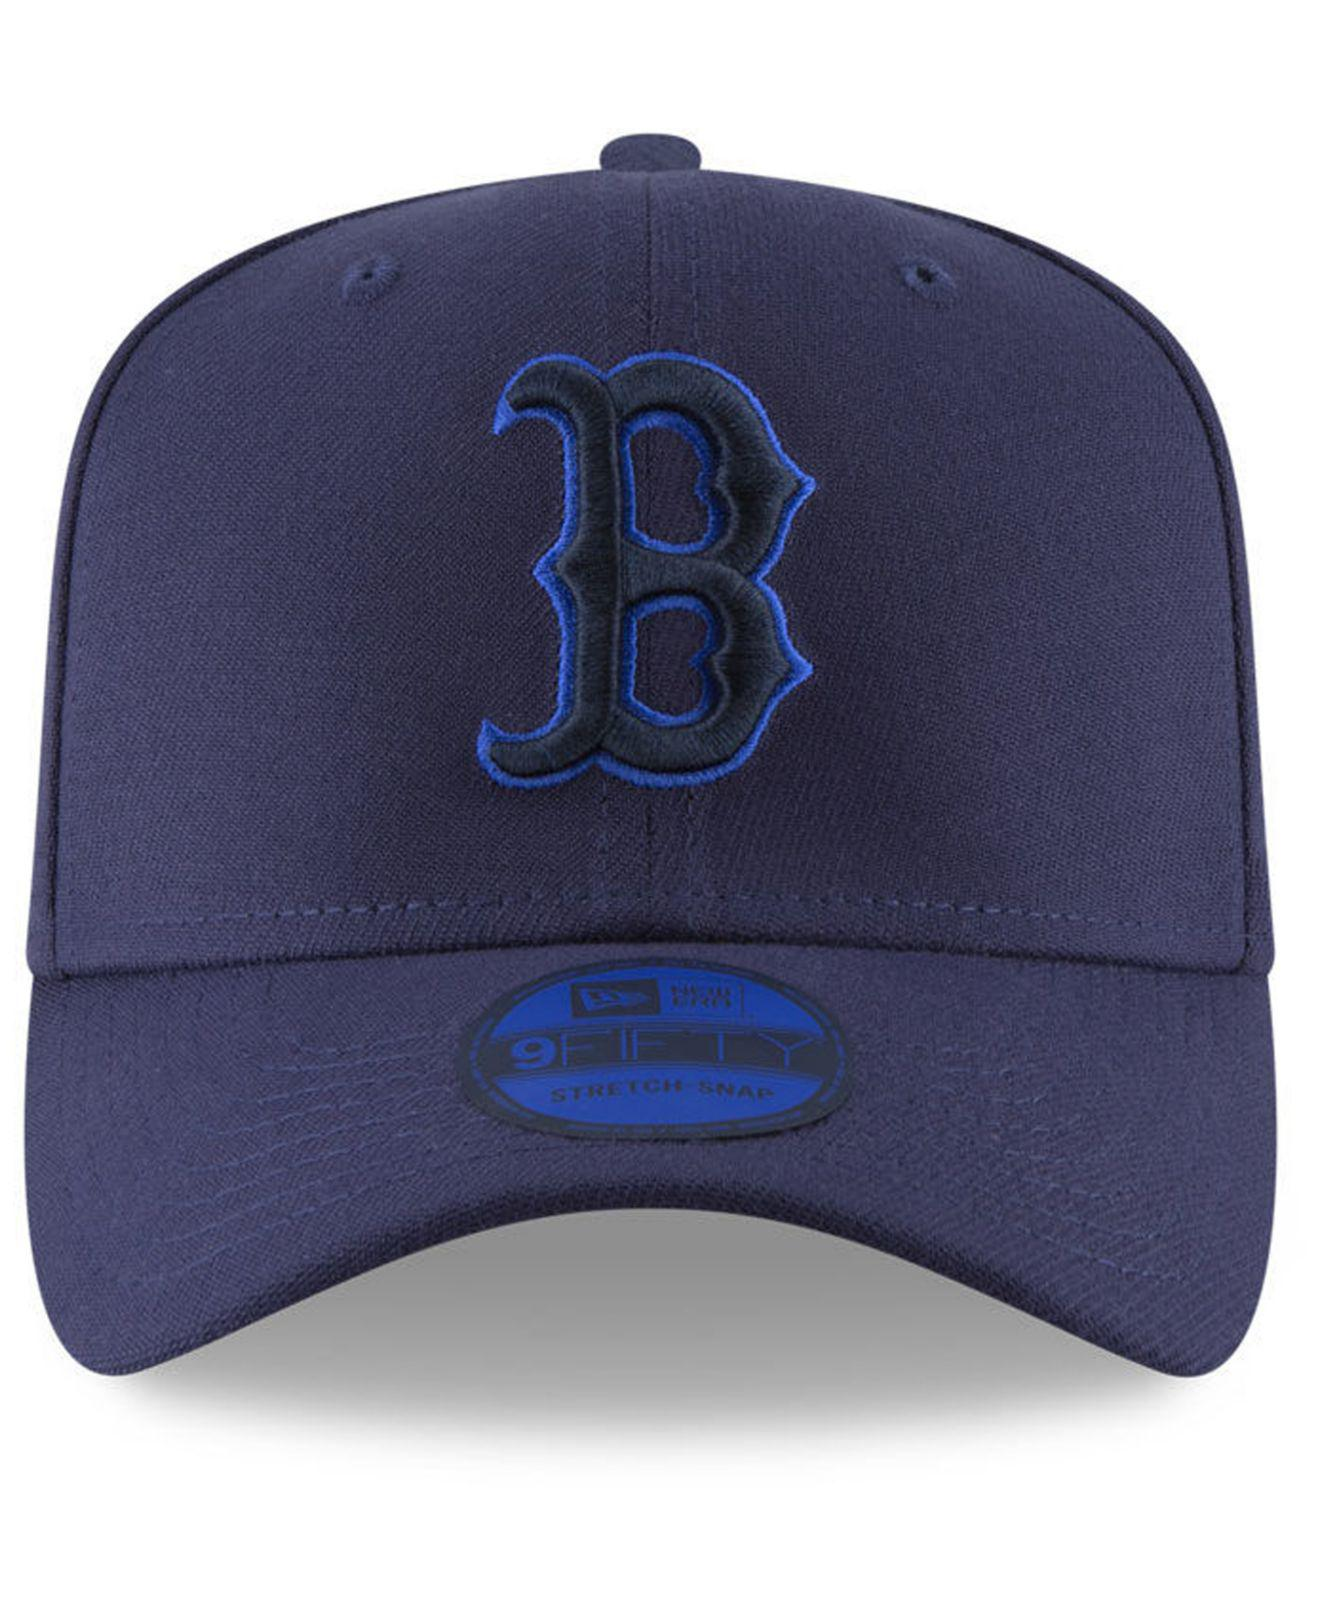 cdb362977c4 ... coupon code for lyst ktz boston red sox color prism pack stretch 9fifty  snapback cap in